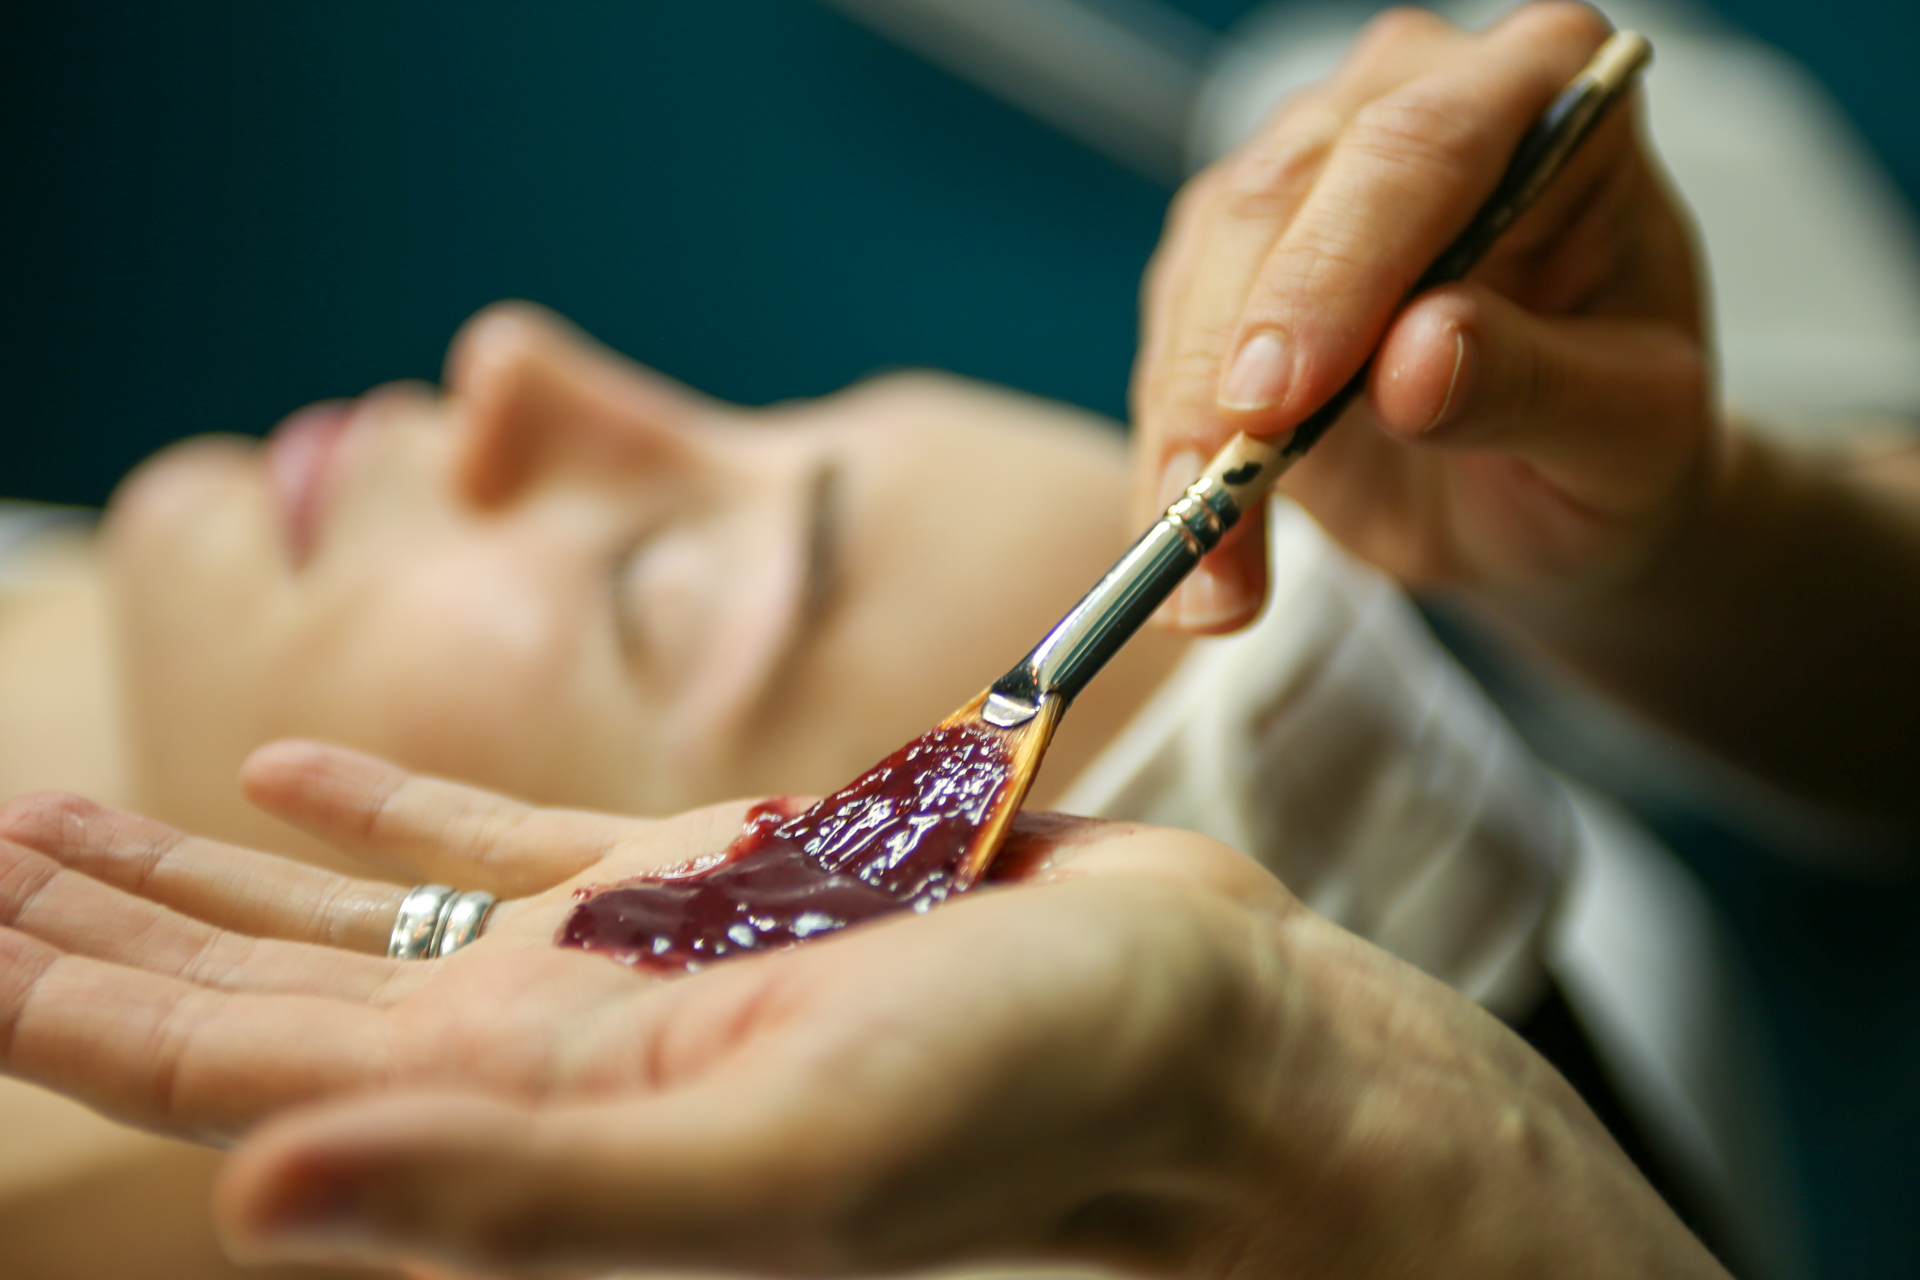 ENHANCED CUSTOM SIGNATURE FACIAL   Includes everything in the custom signature facial, plus an additional AHA's and/or salicylic depending on your specific needs and goals.  90-minute session: $100